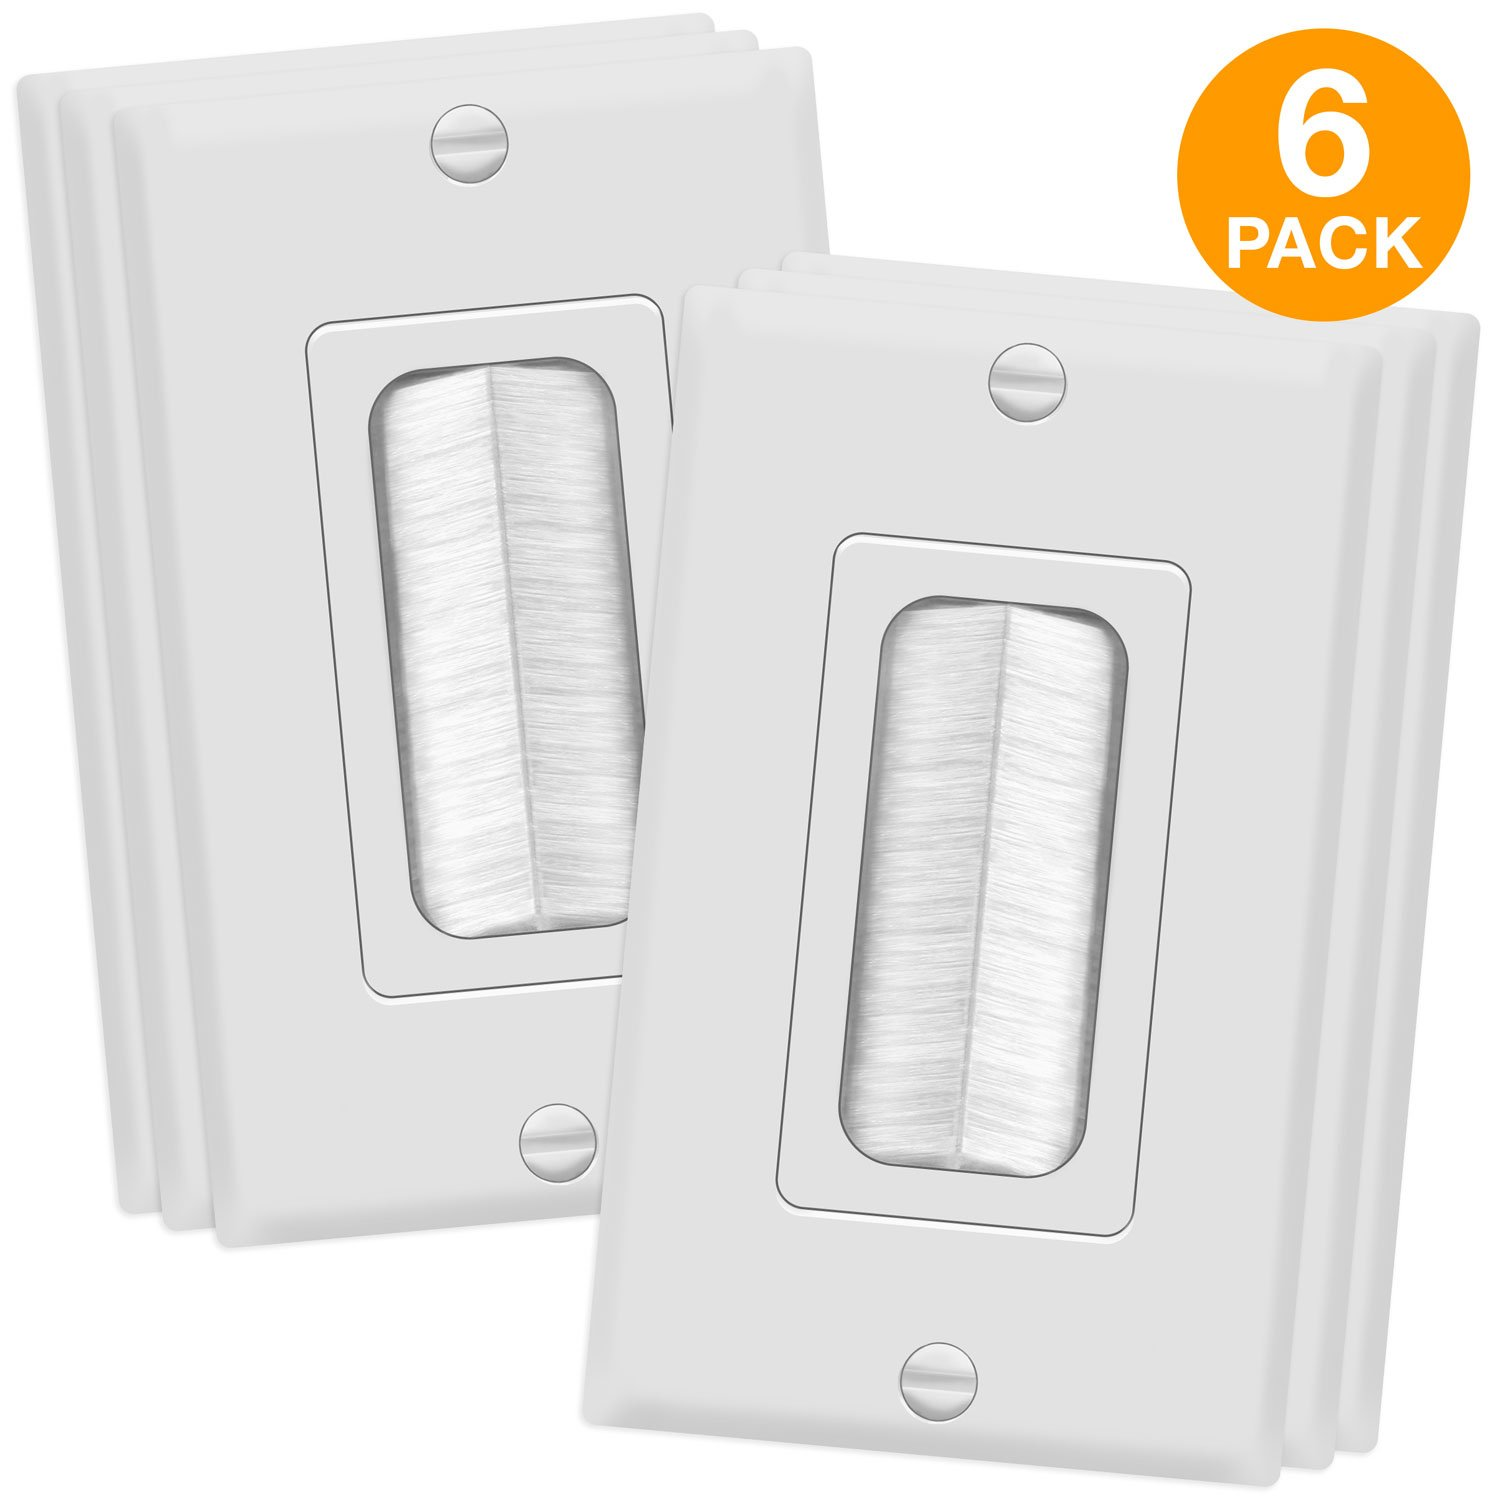 TOPGREENER Bristled Brush Wall Plate Multimedia Pass-Through Insert with Decorator Wall Plate for Low Voltage Cables, Size 1-Gang 4.50'' x 2.75'', Polycarbonate Thermoplastic, TG8891-6PCS, White 6 Pack by TOPGREENER